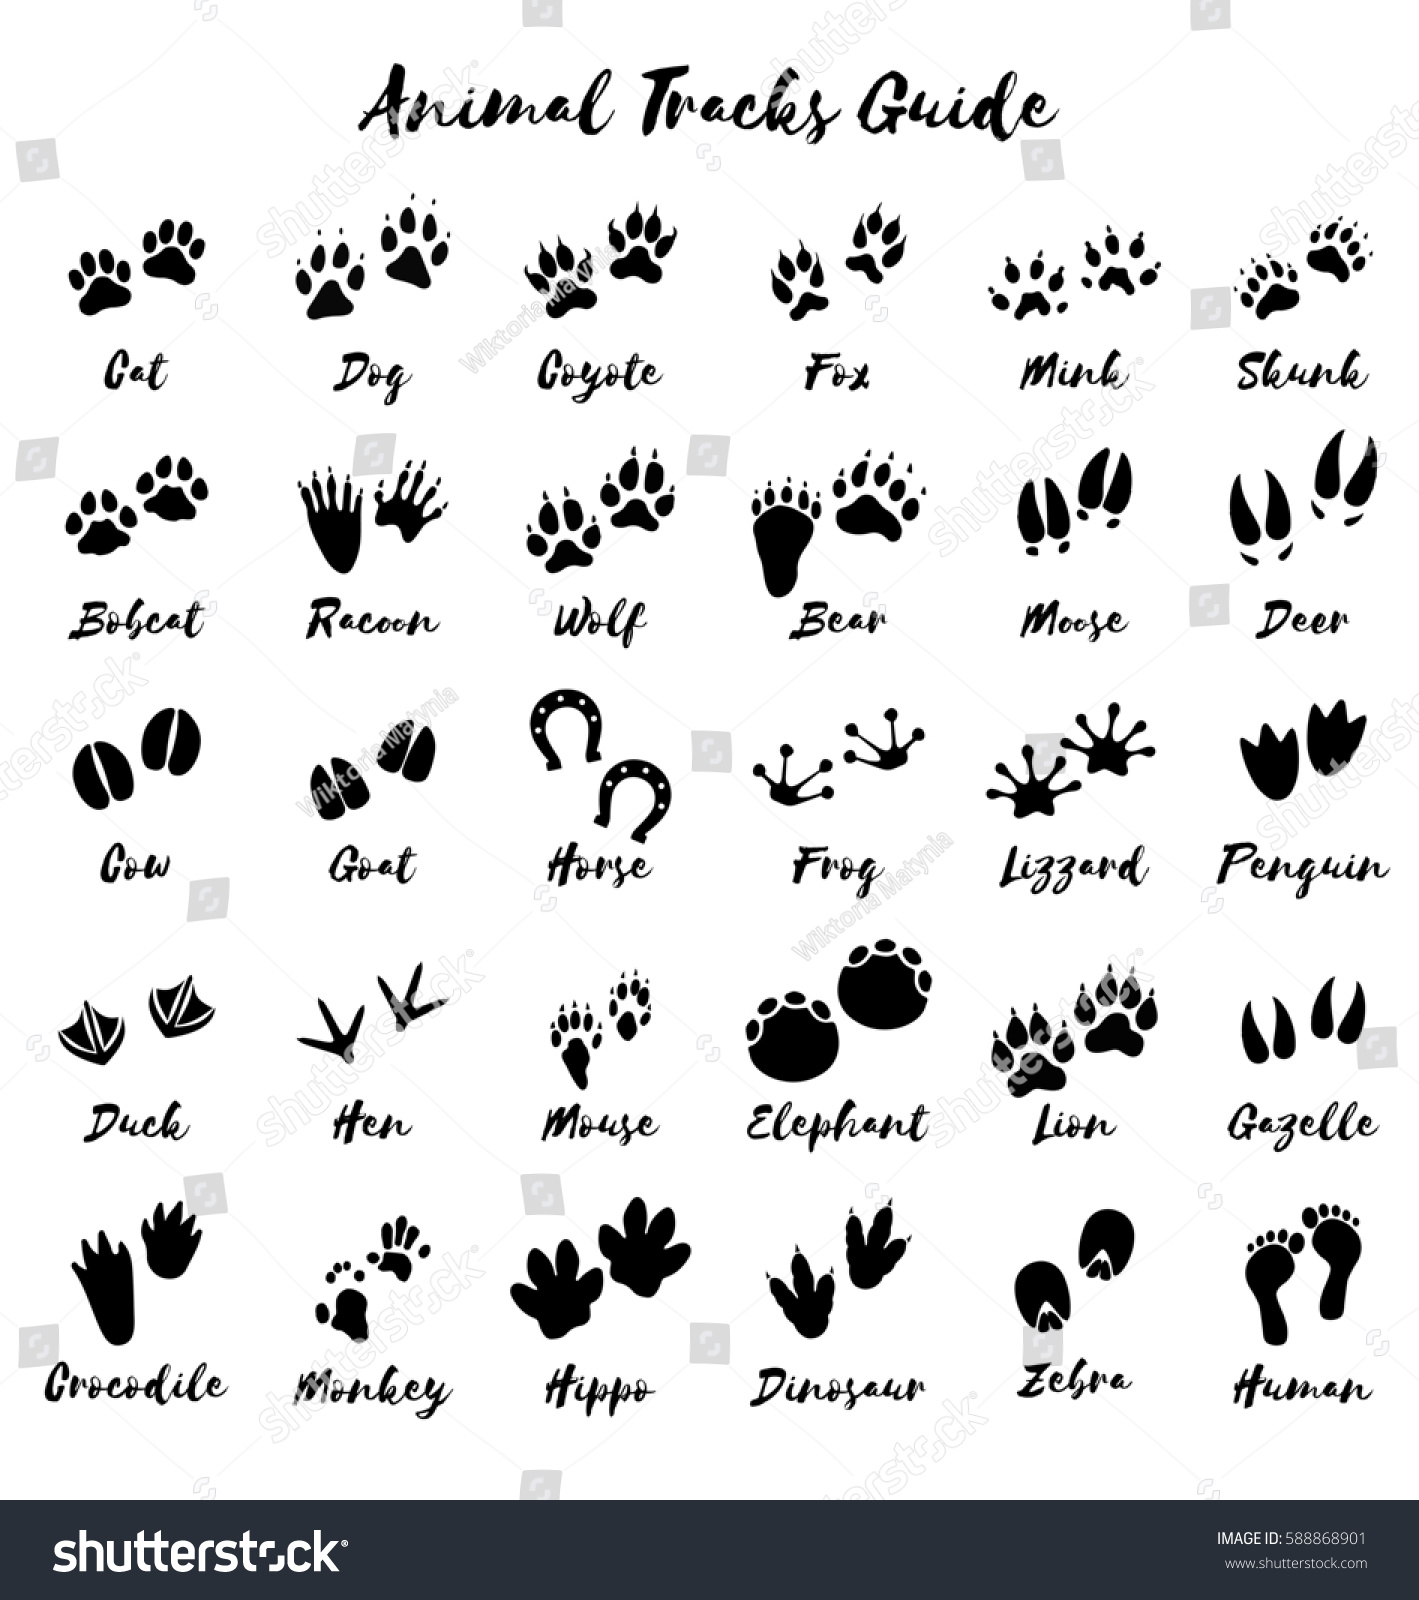 Free Printable Worksheet Animal Tracks